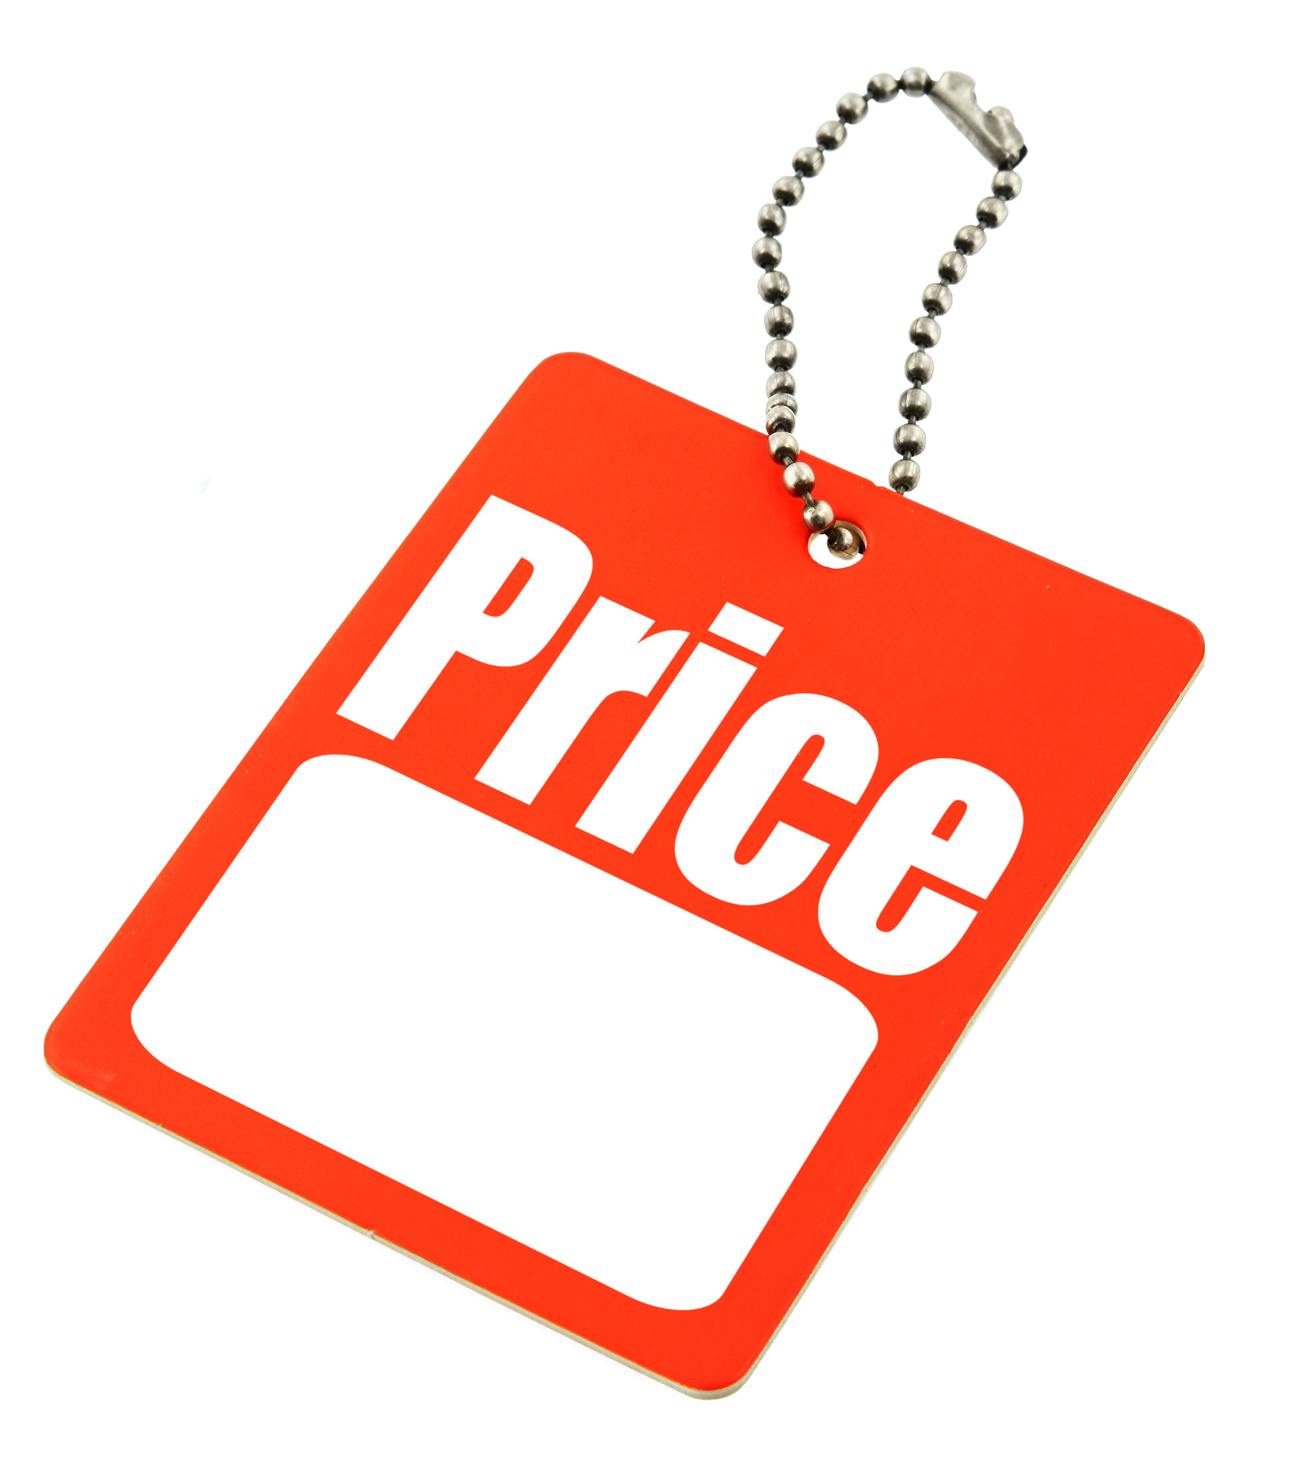 Price Tag Template - Clipart library-Price Tag Template - Clipart library-10